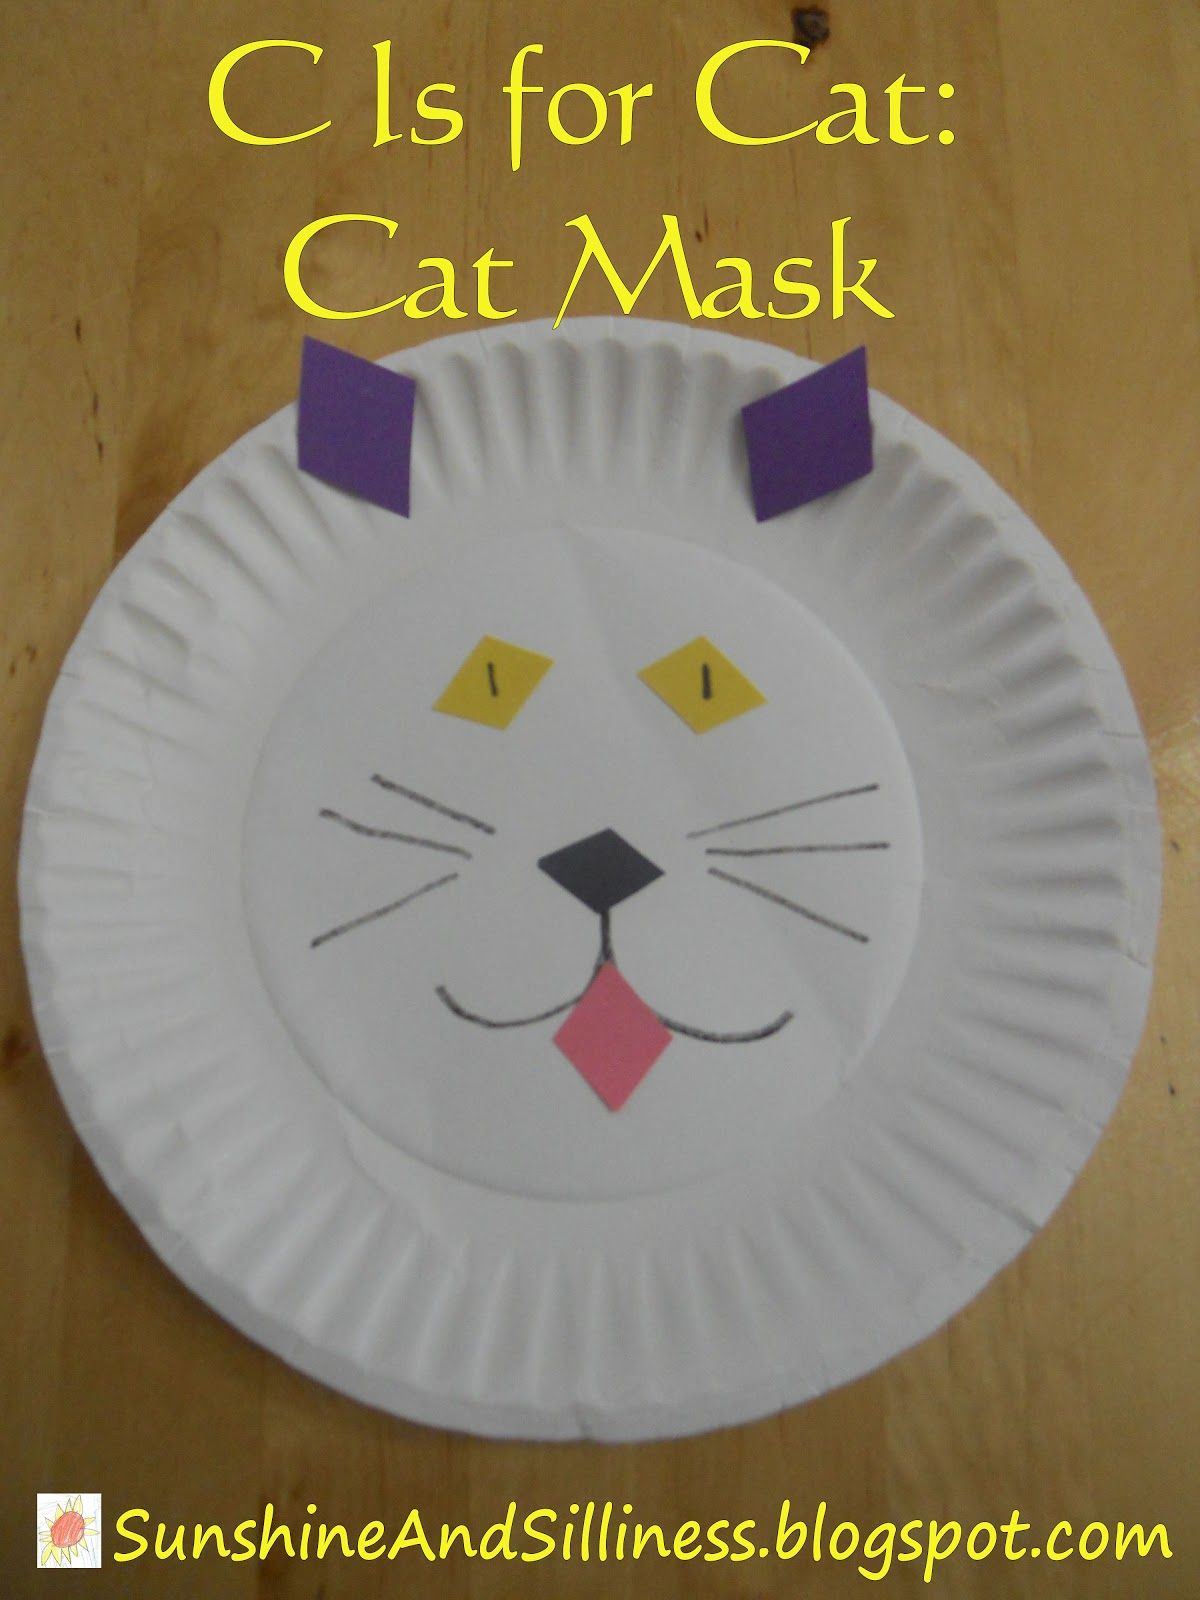 Sunshine And Silliness C Is For Cat Cat Mask Diamond Shapes